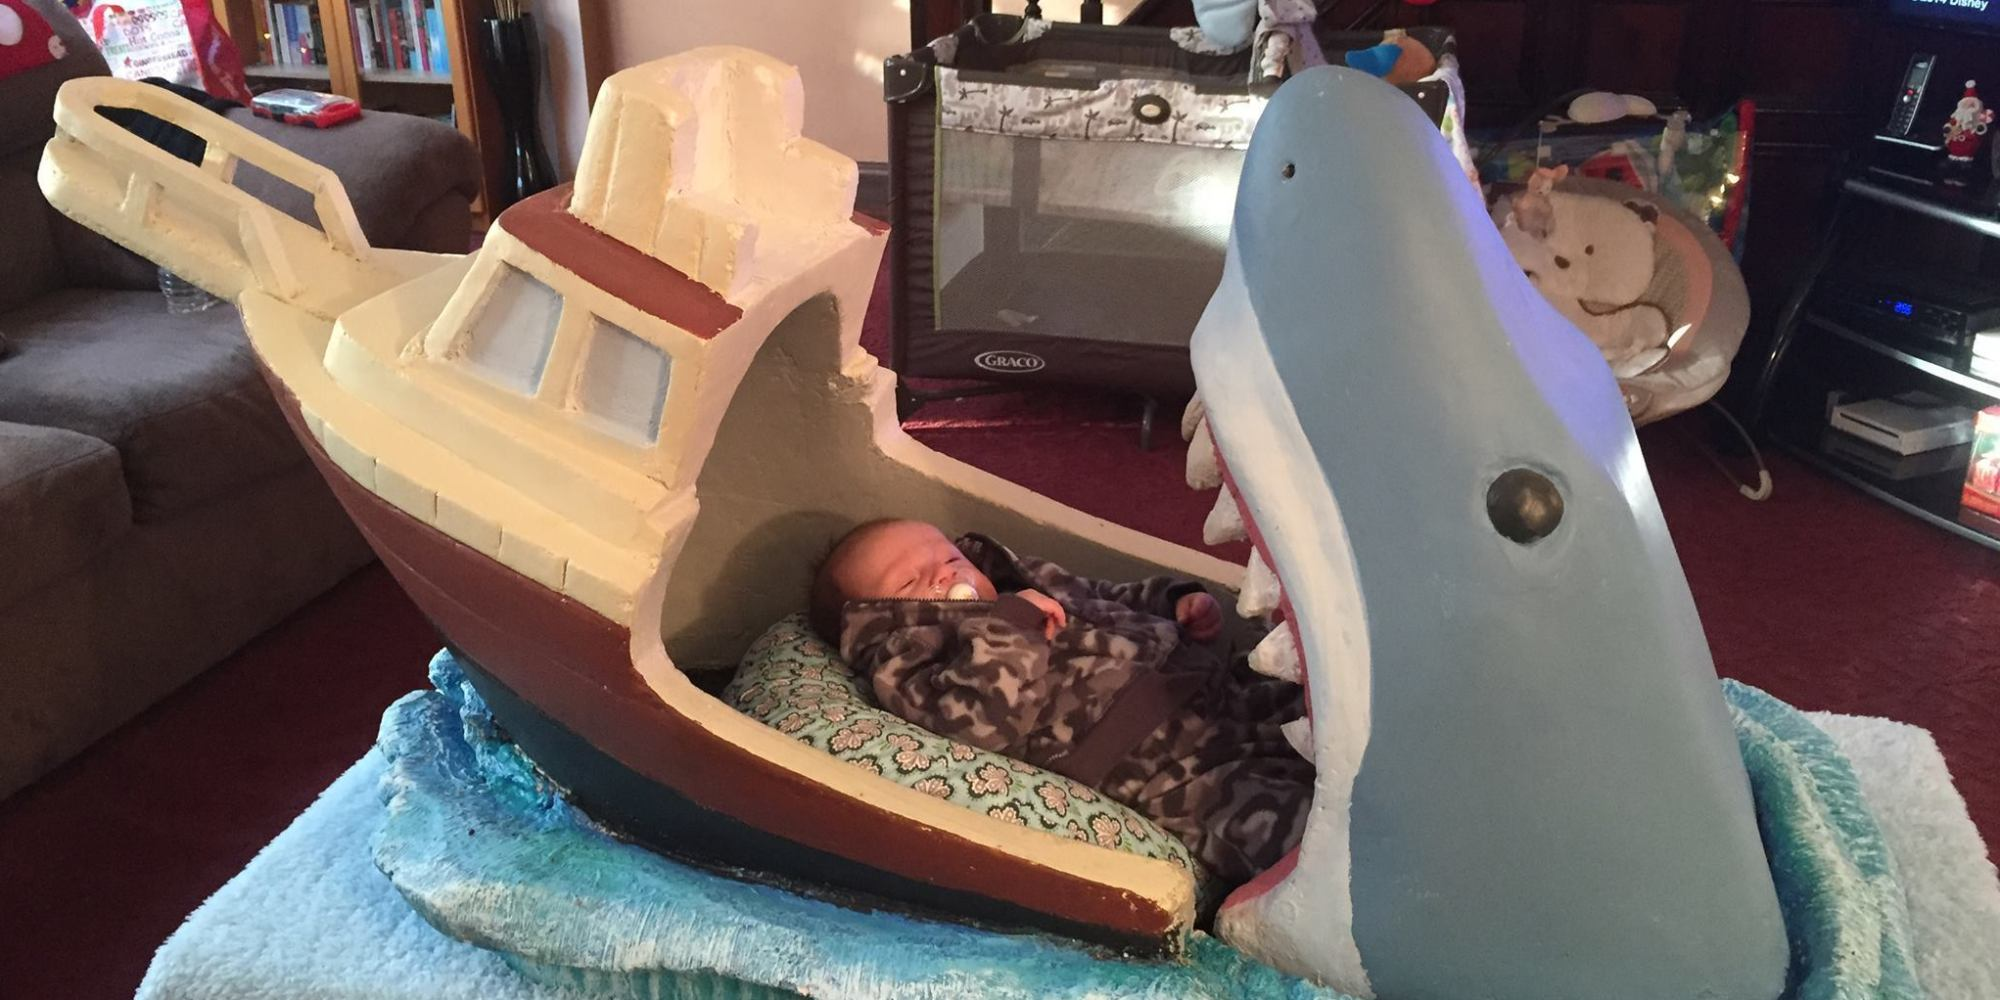 Jaws Themed Baby Crib Takes A Giant Bite Out Of The Internet